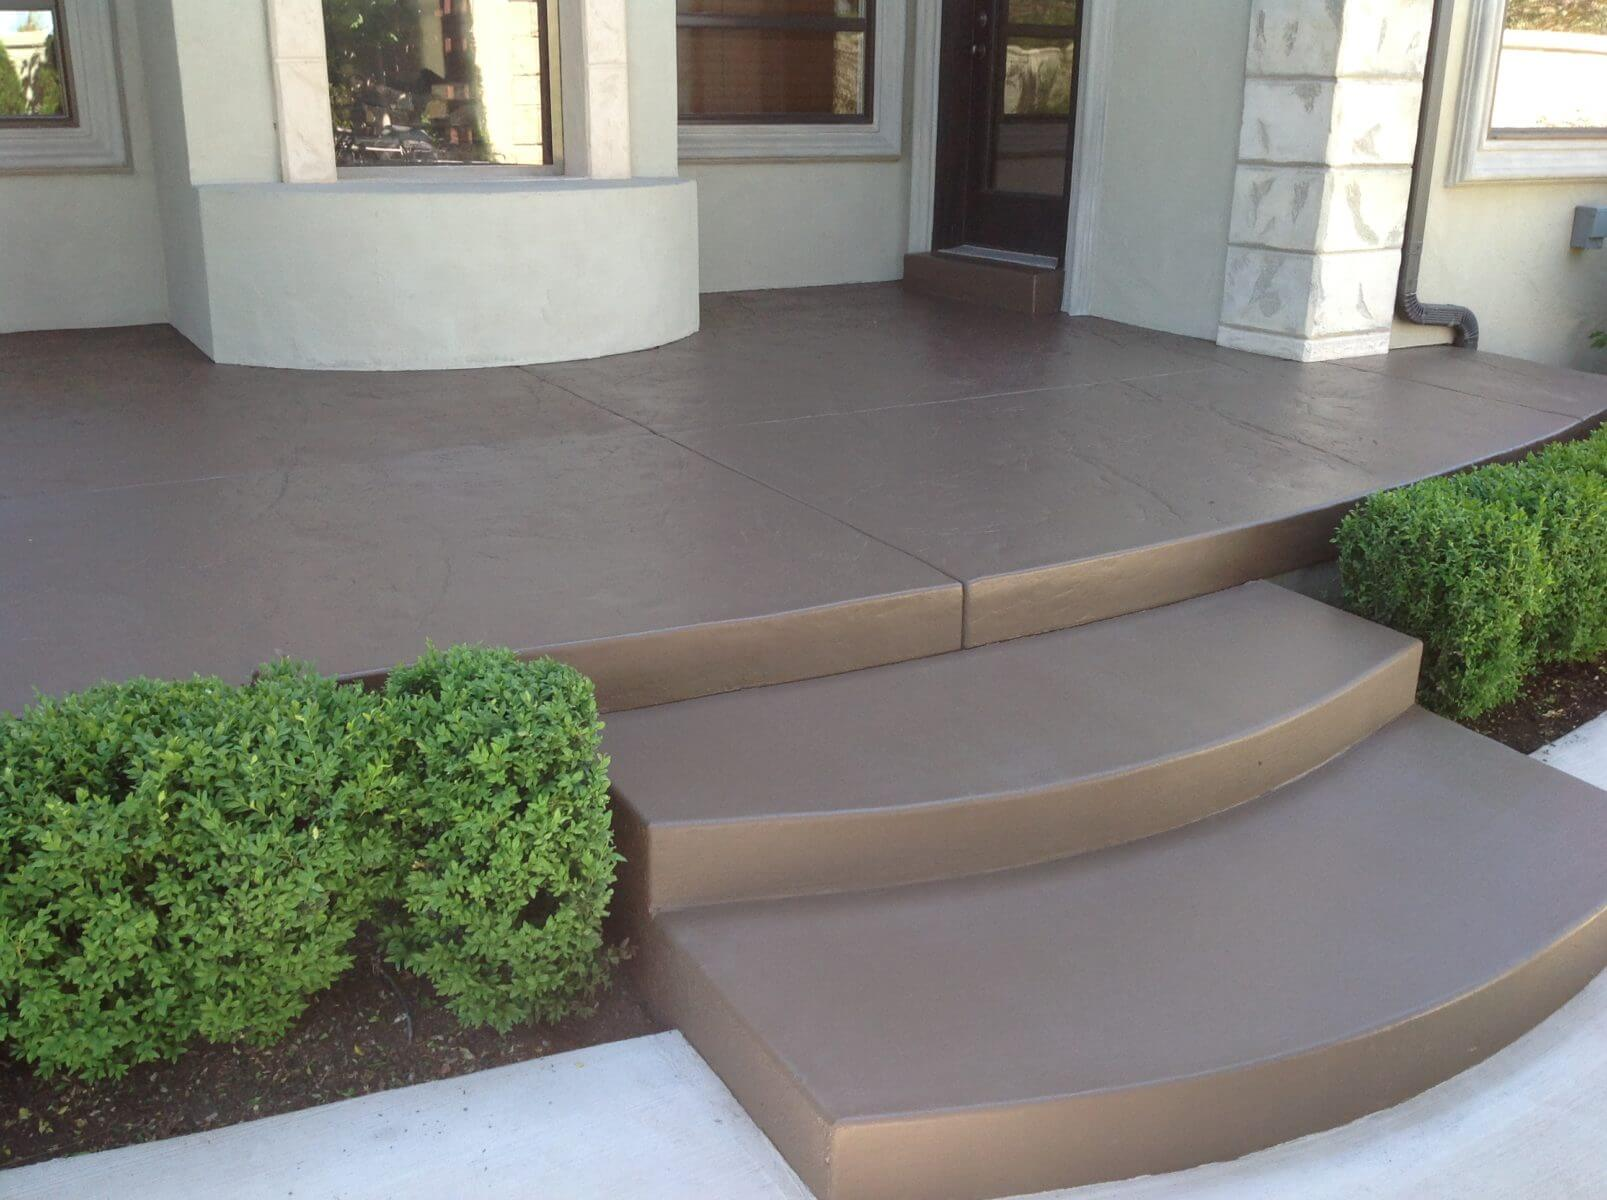 Concrete Overlays Utah | Concrete Contractor Utah